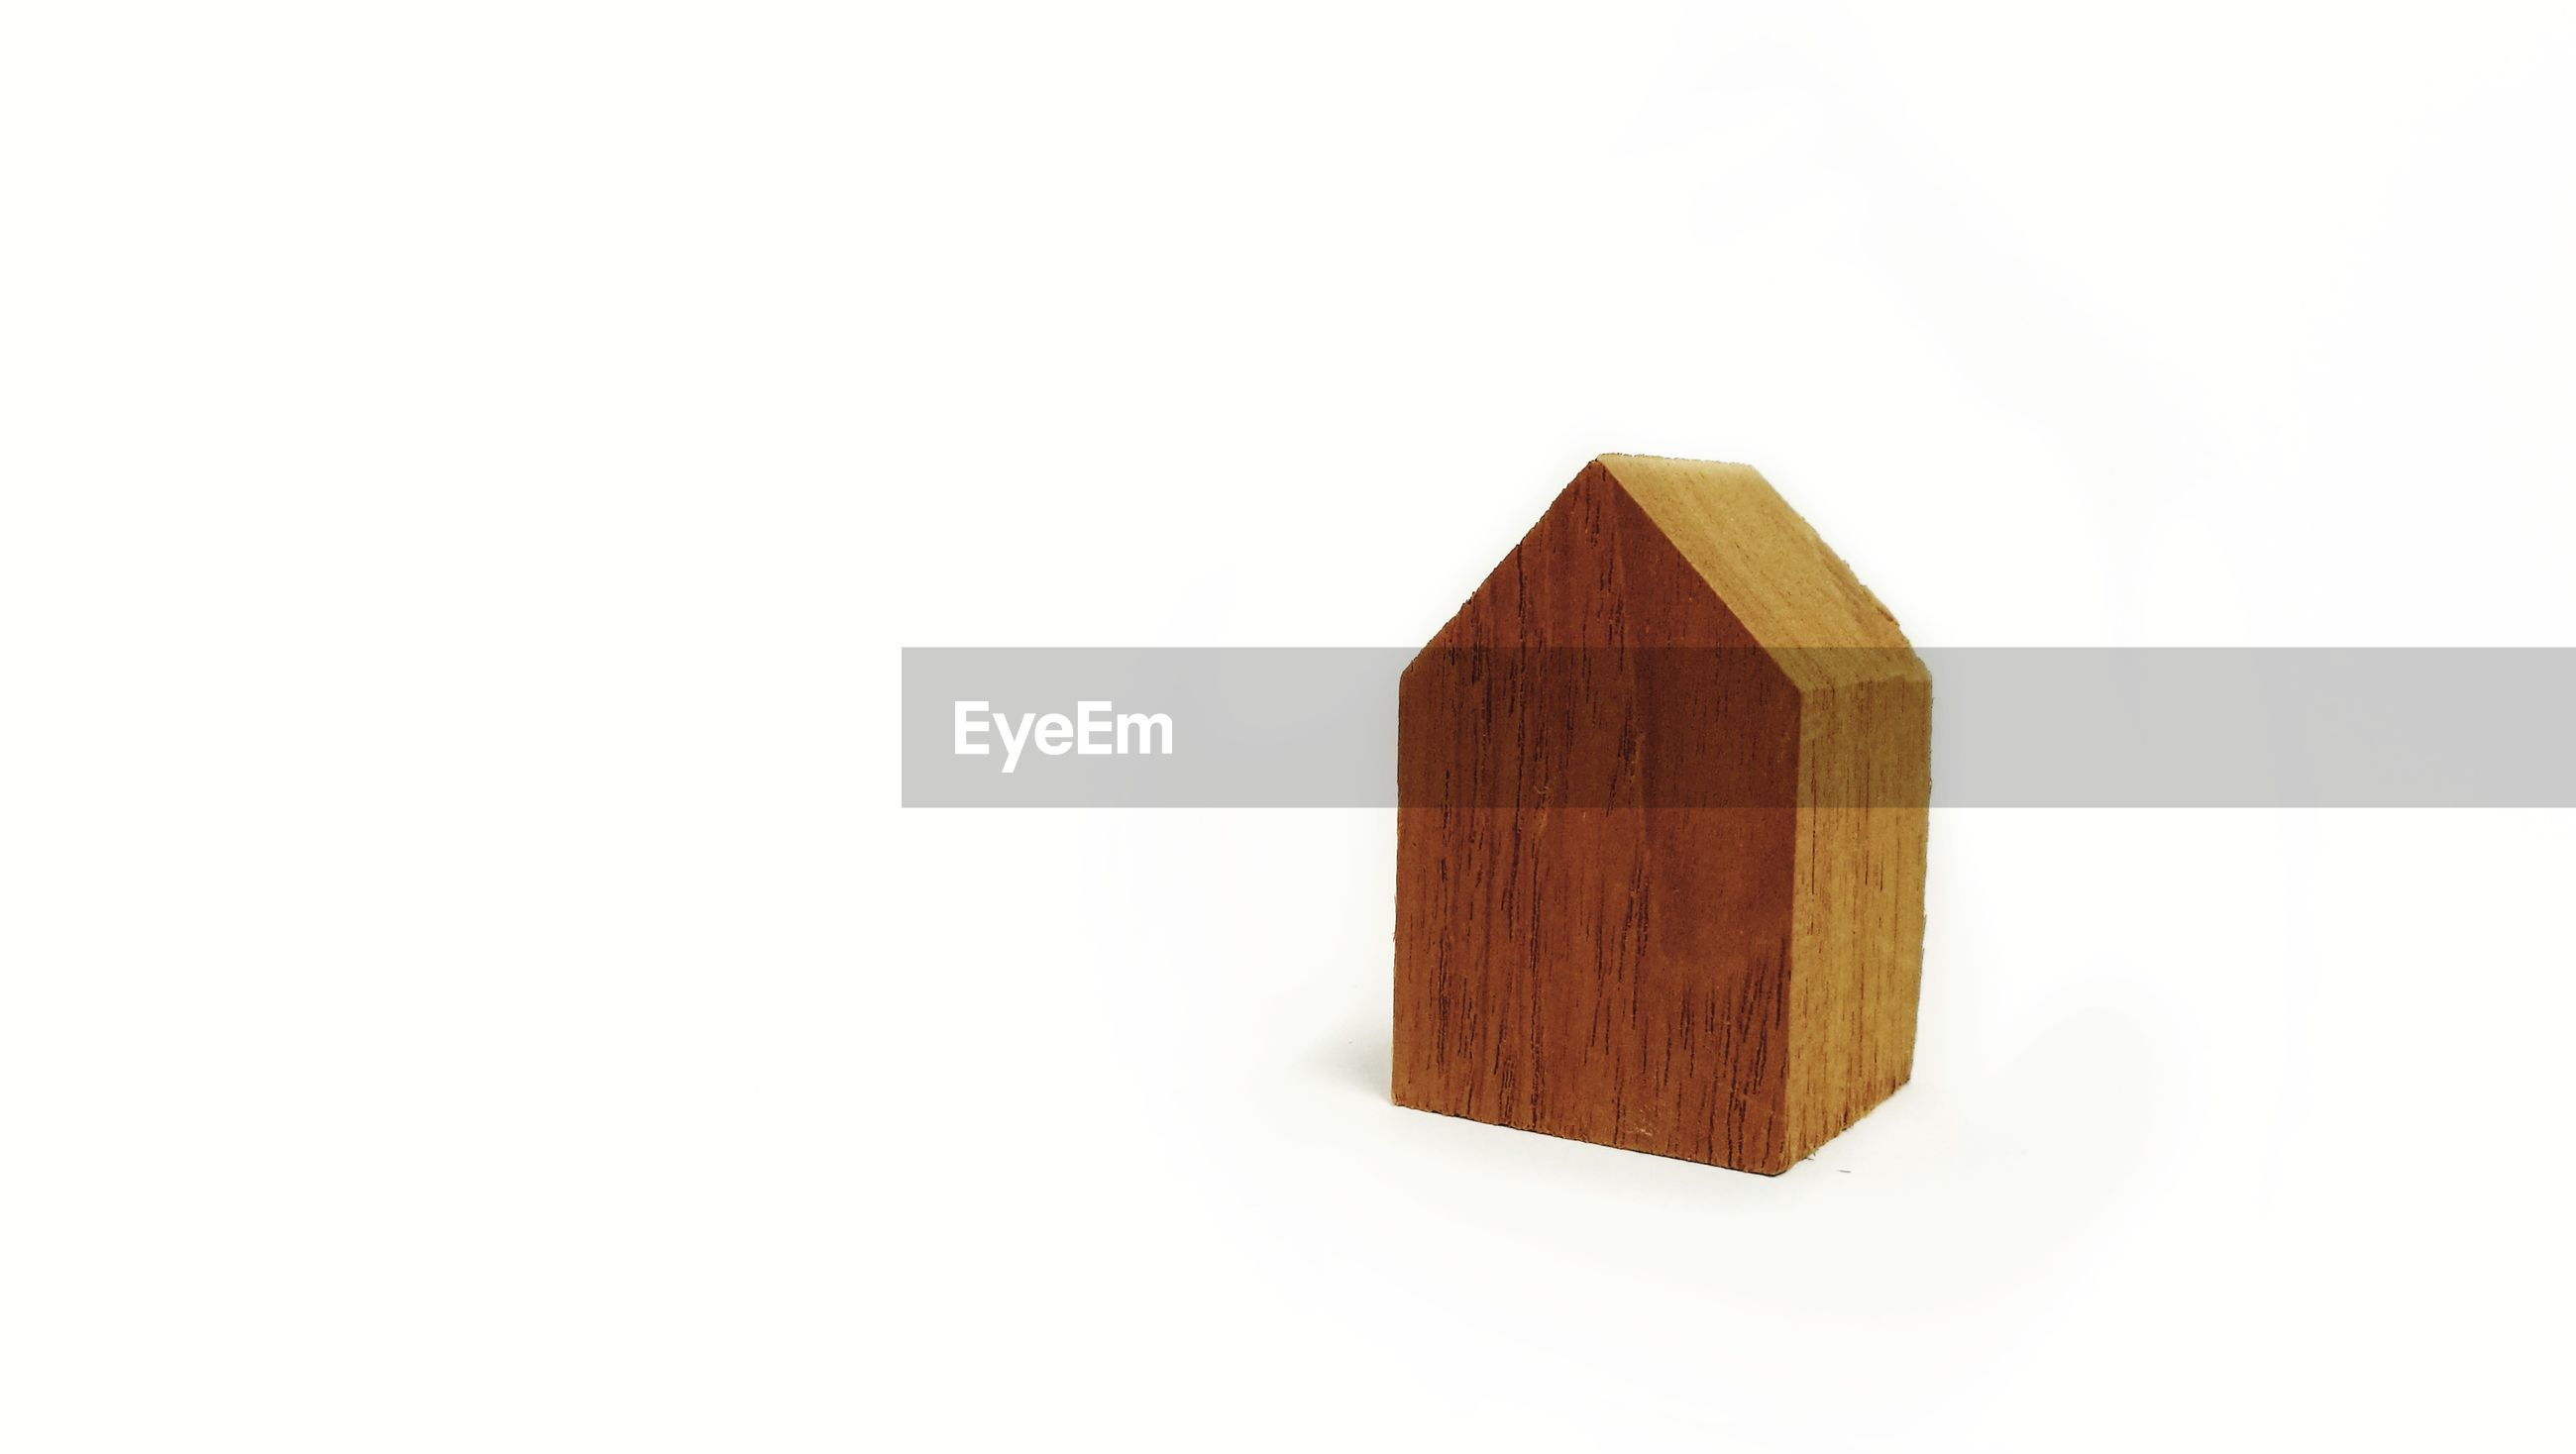 Close-up of wooden toy block over white background